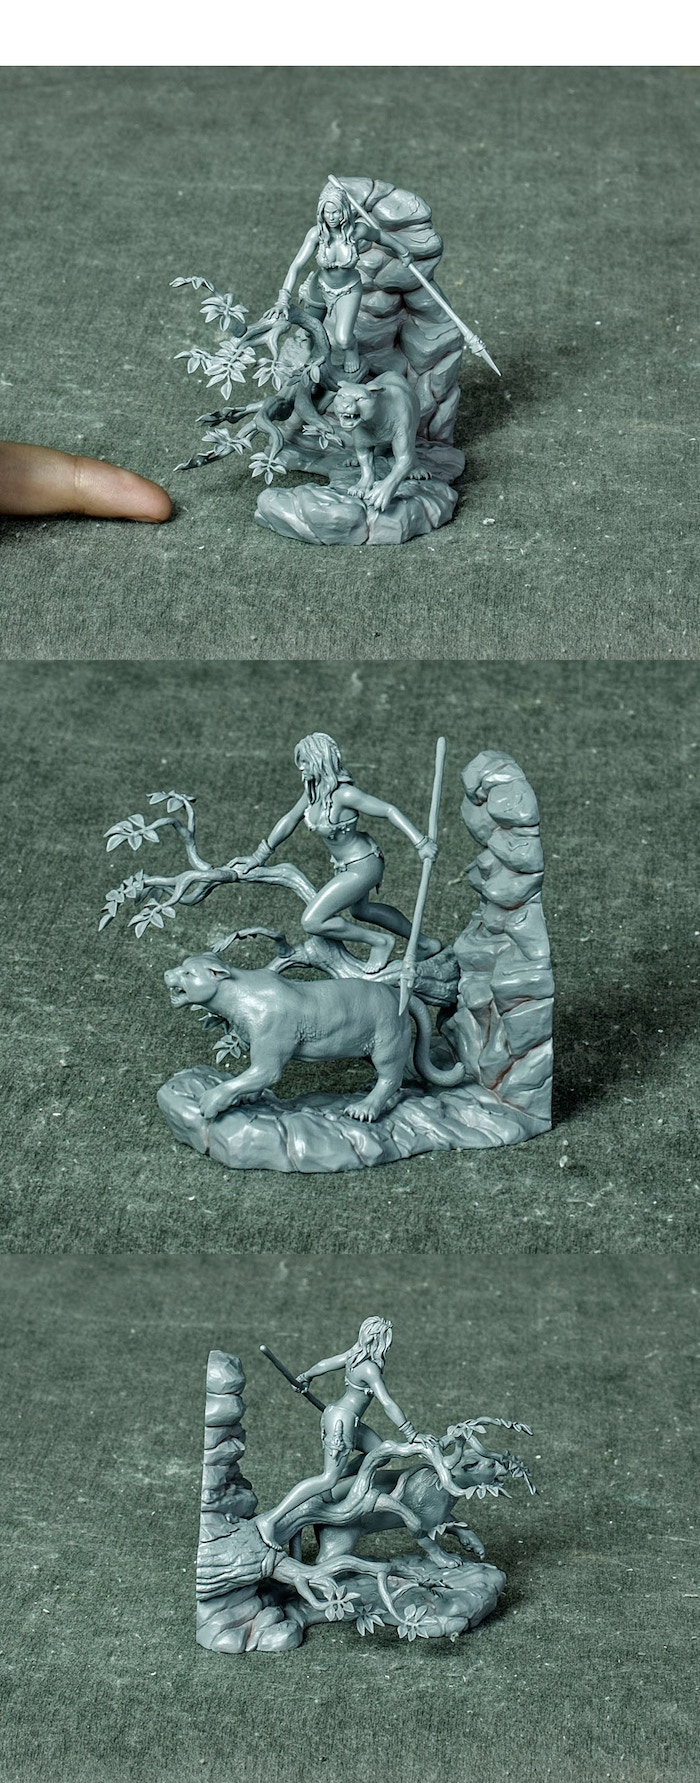 All Hail the Queen - Diroama in 54 mm - Master Copy